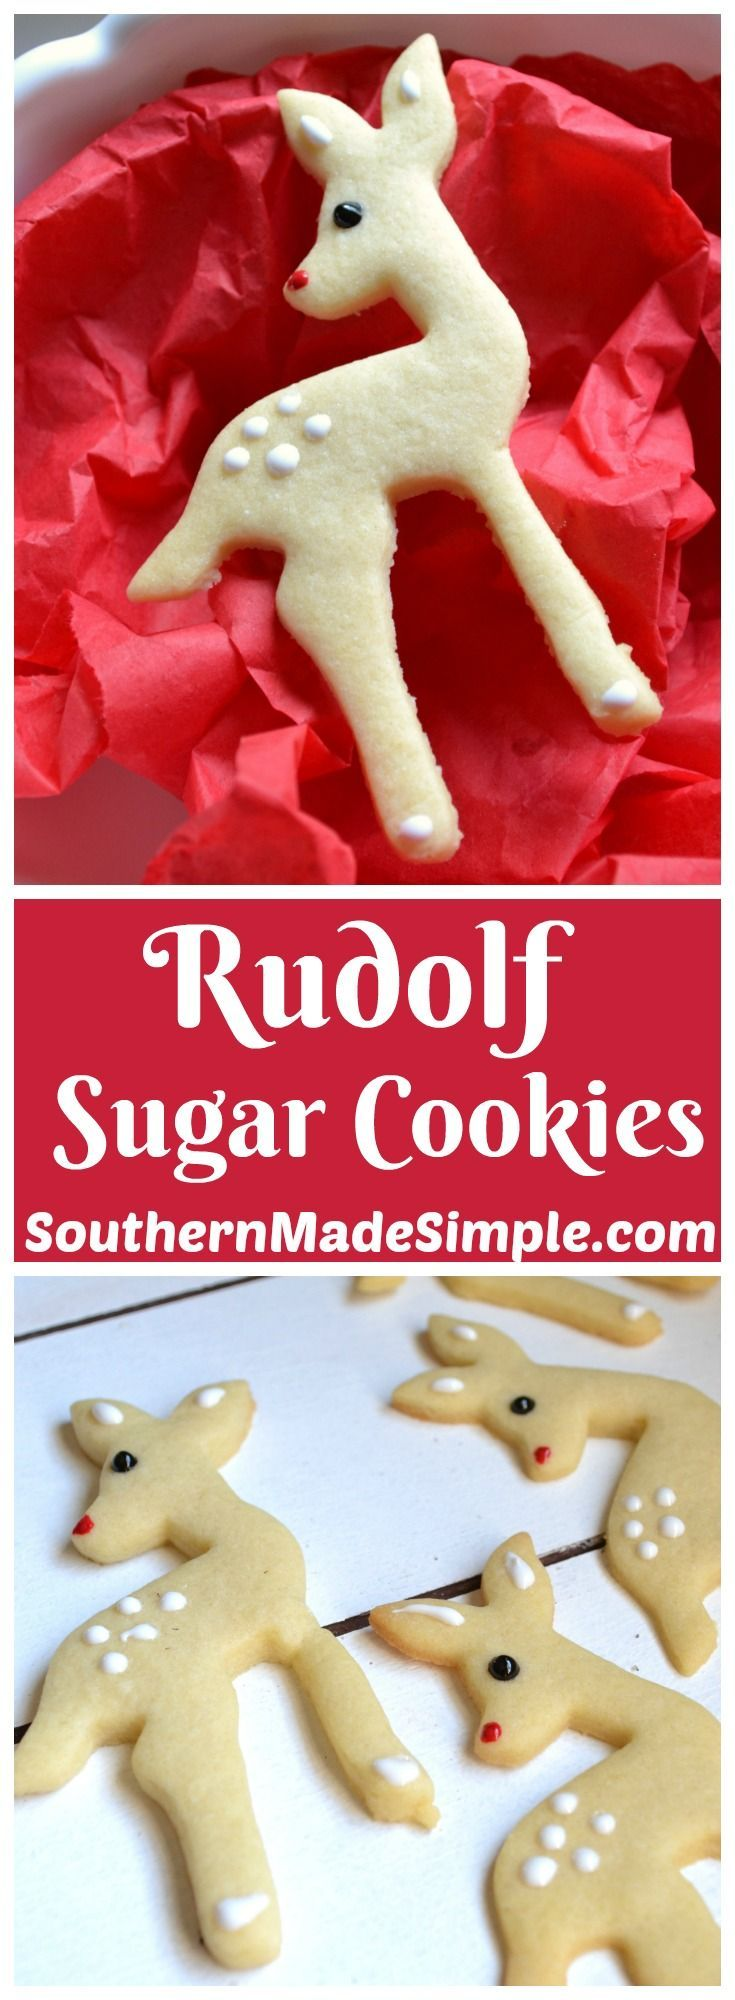 These sweet little Rudolf sugar cookies are a fantastic holiday treat, and they're SO easy to make!